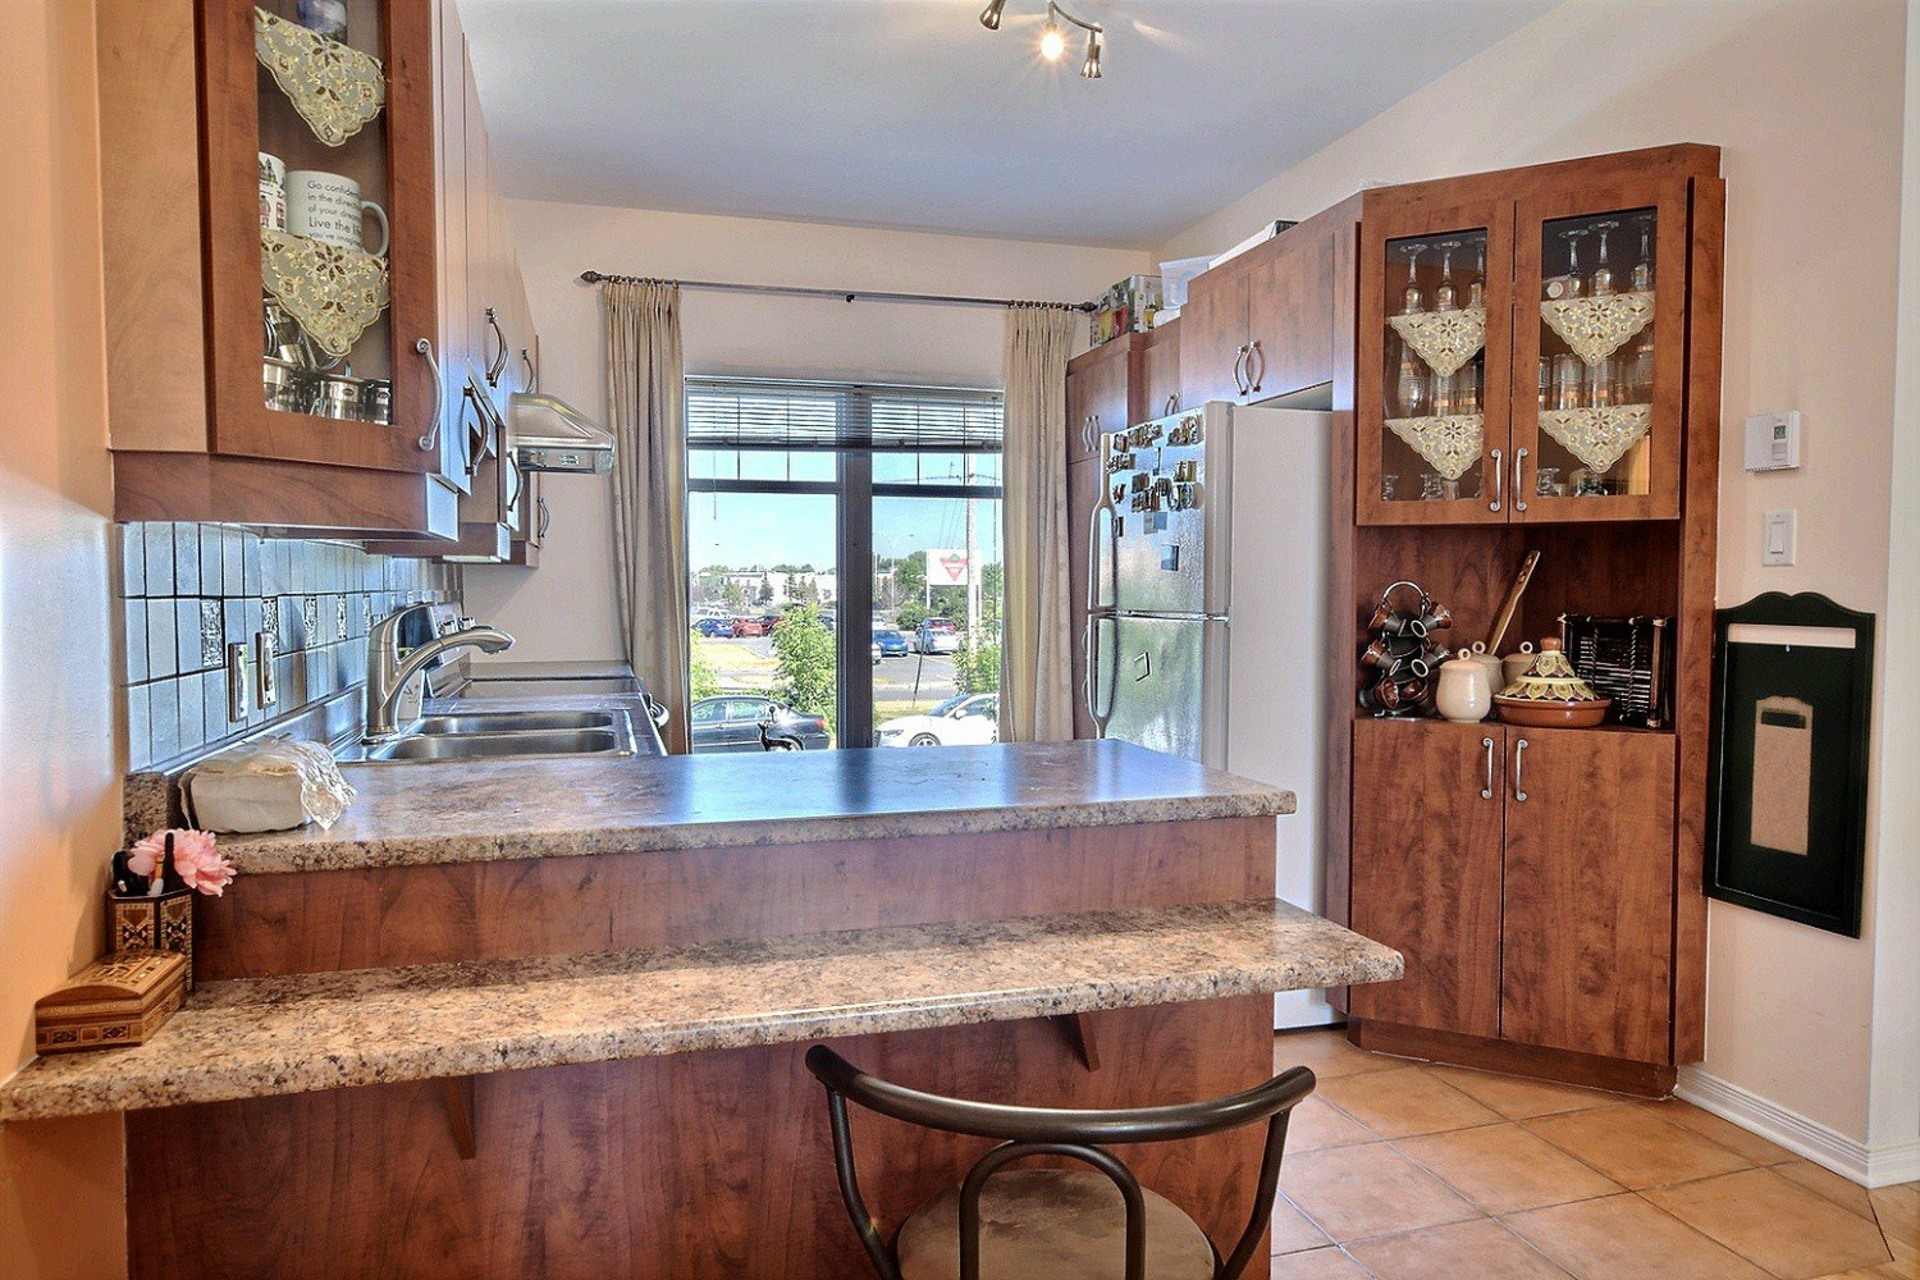 image 8 - House For sale Brossard - 6 rooms